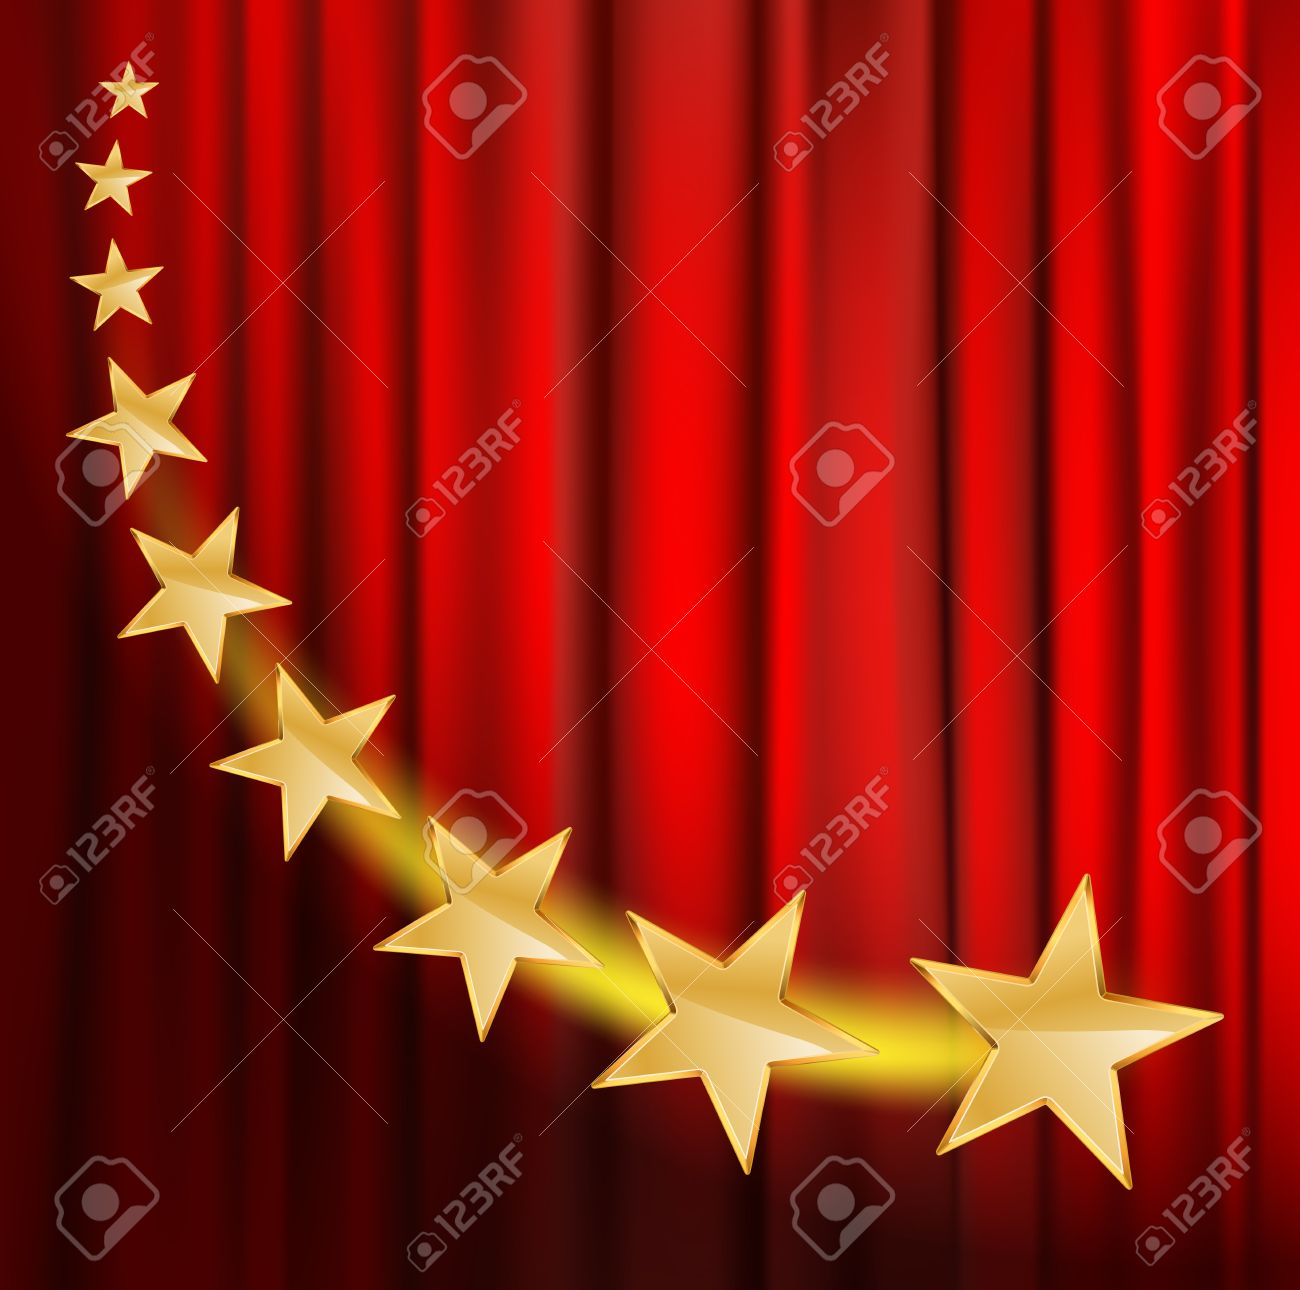 Red curtain spotlight - Vector Golden Stars Flying Over Red Curtain Background With Spotlight